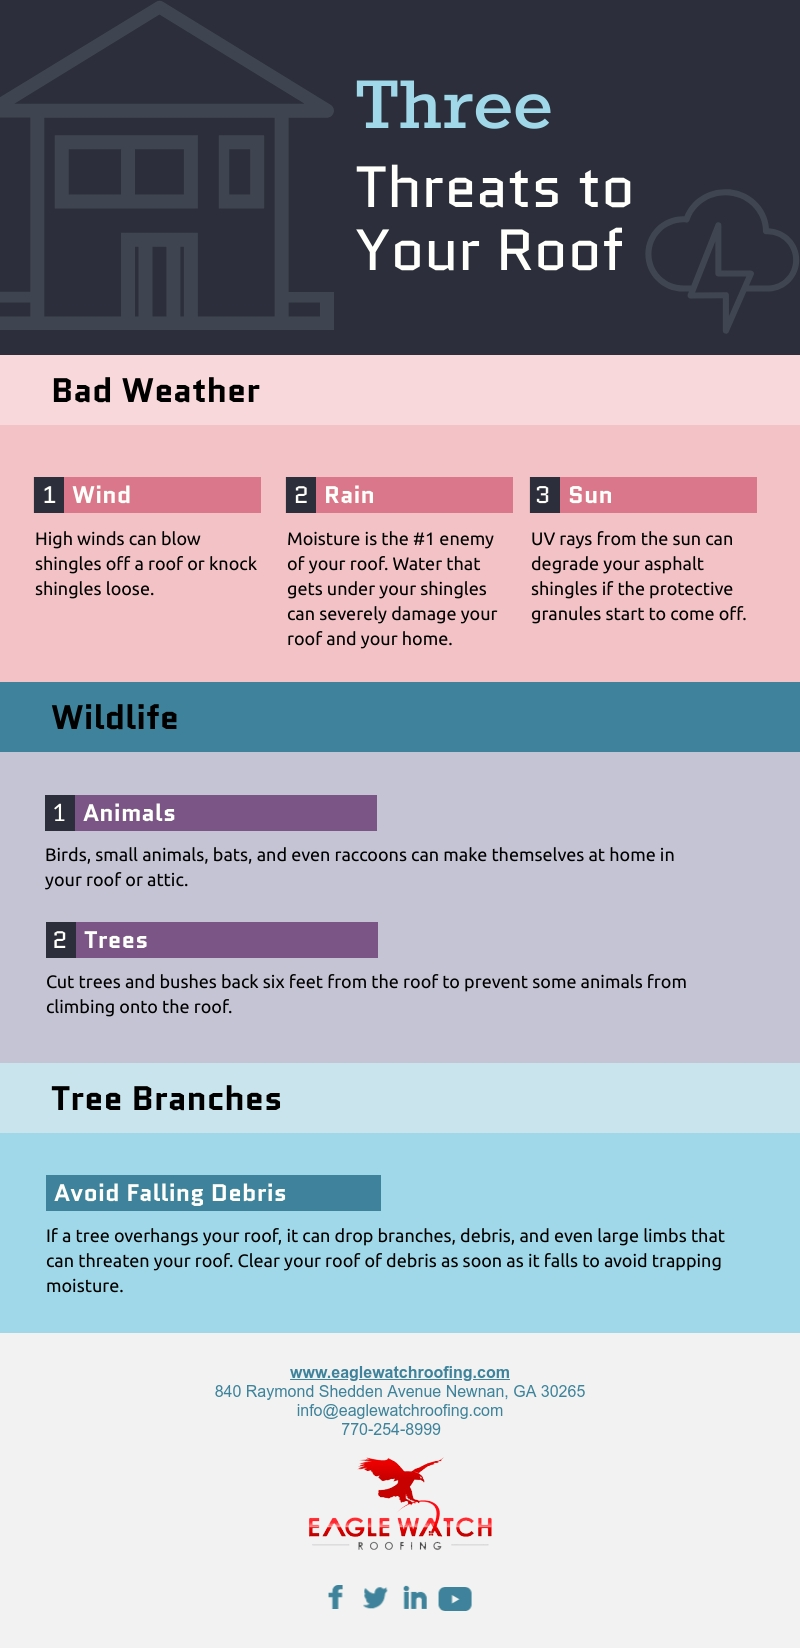 Three Threats to Your Roof [infographic]